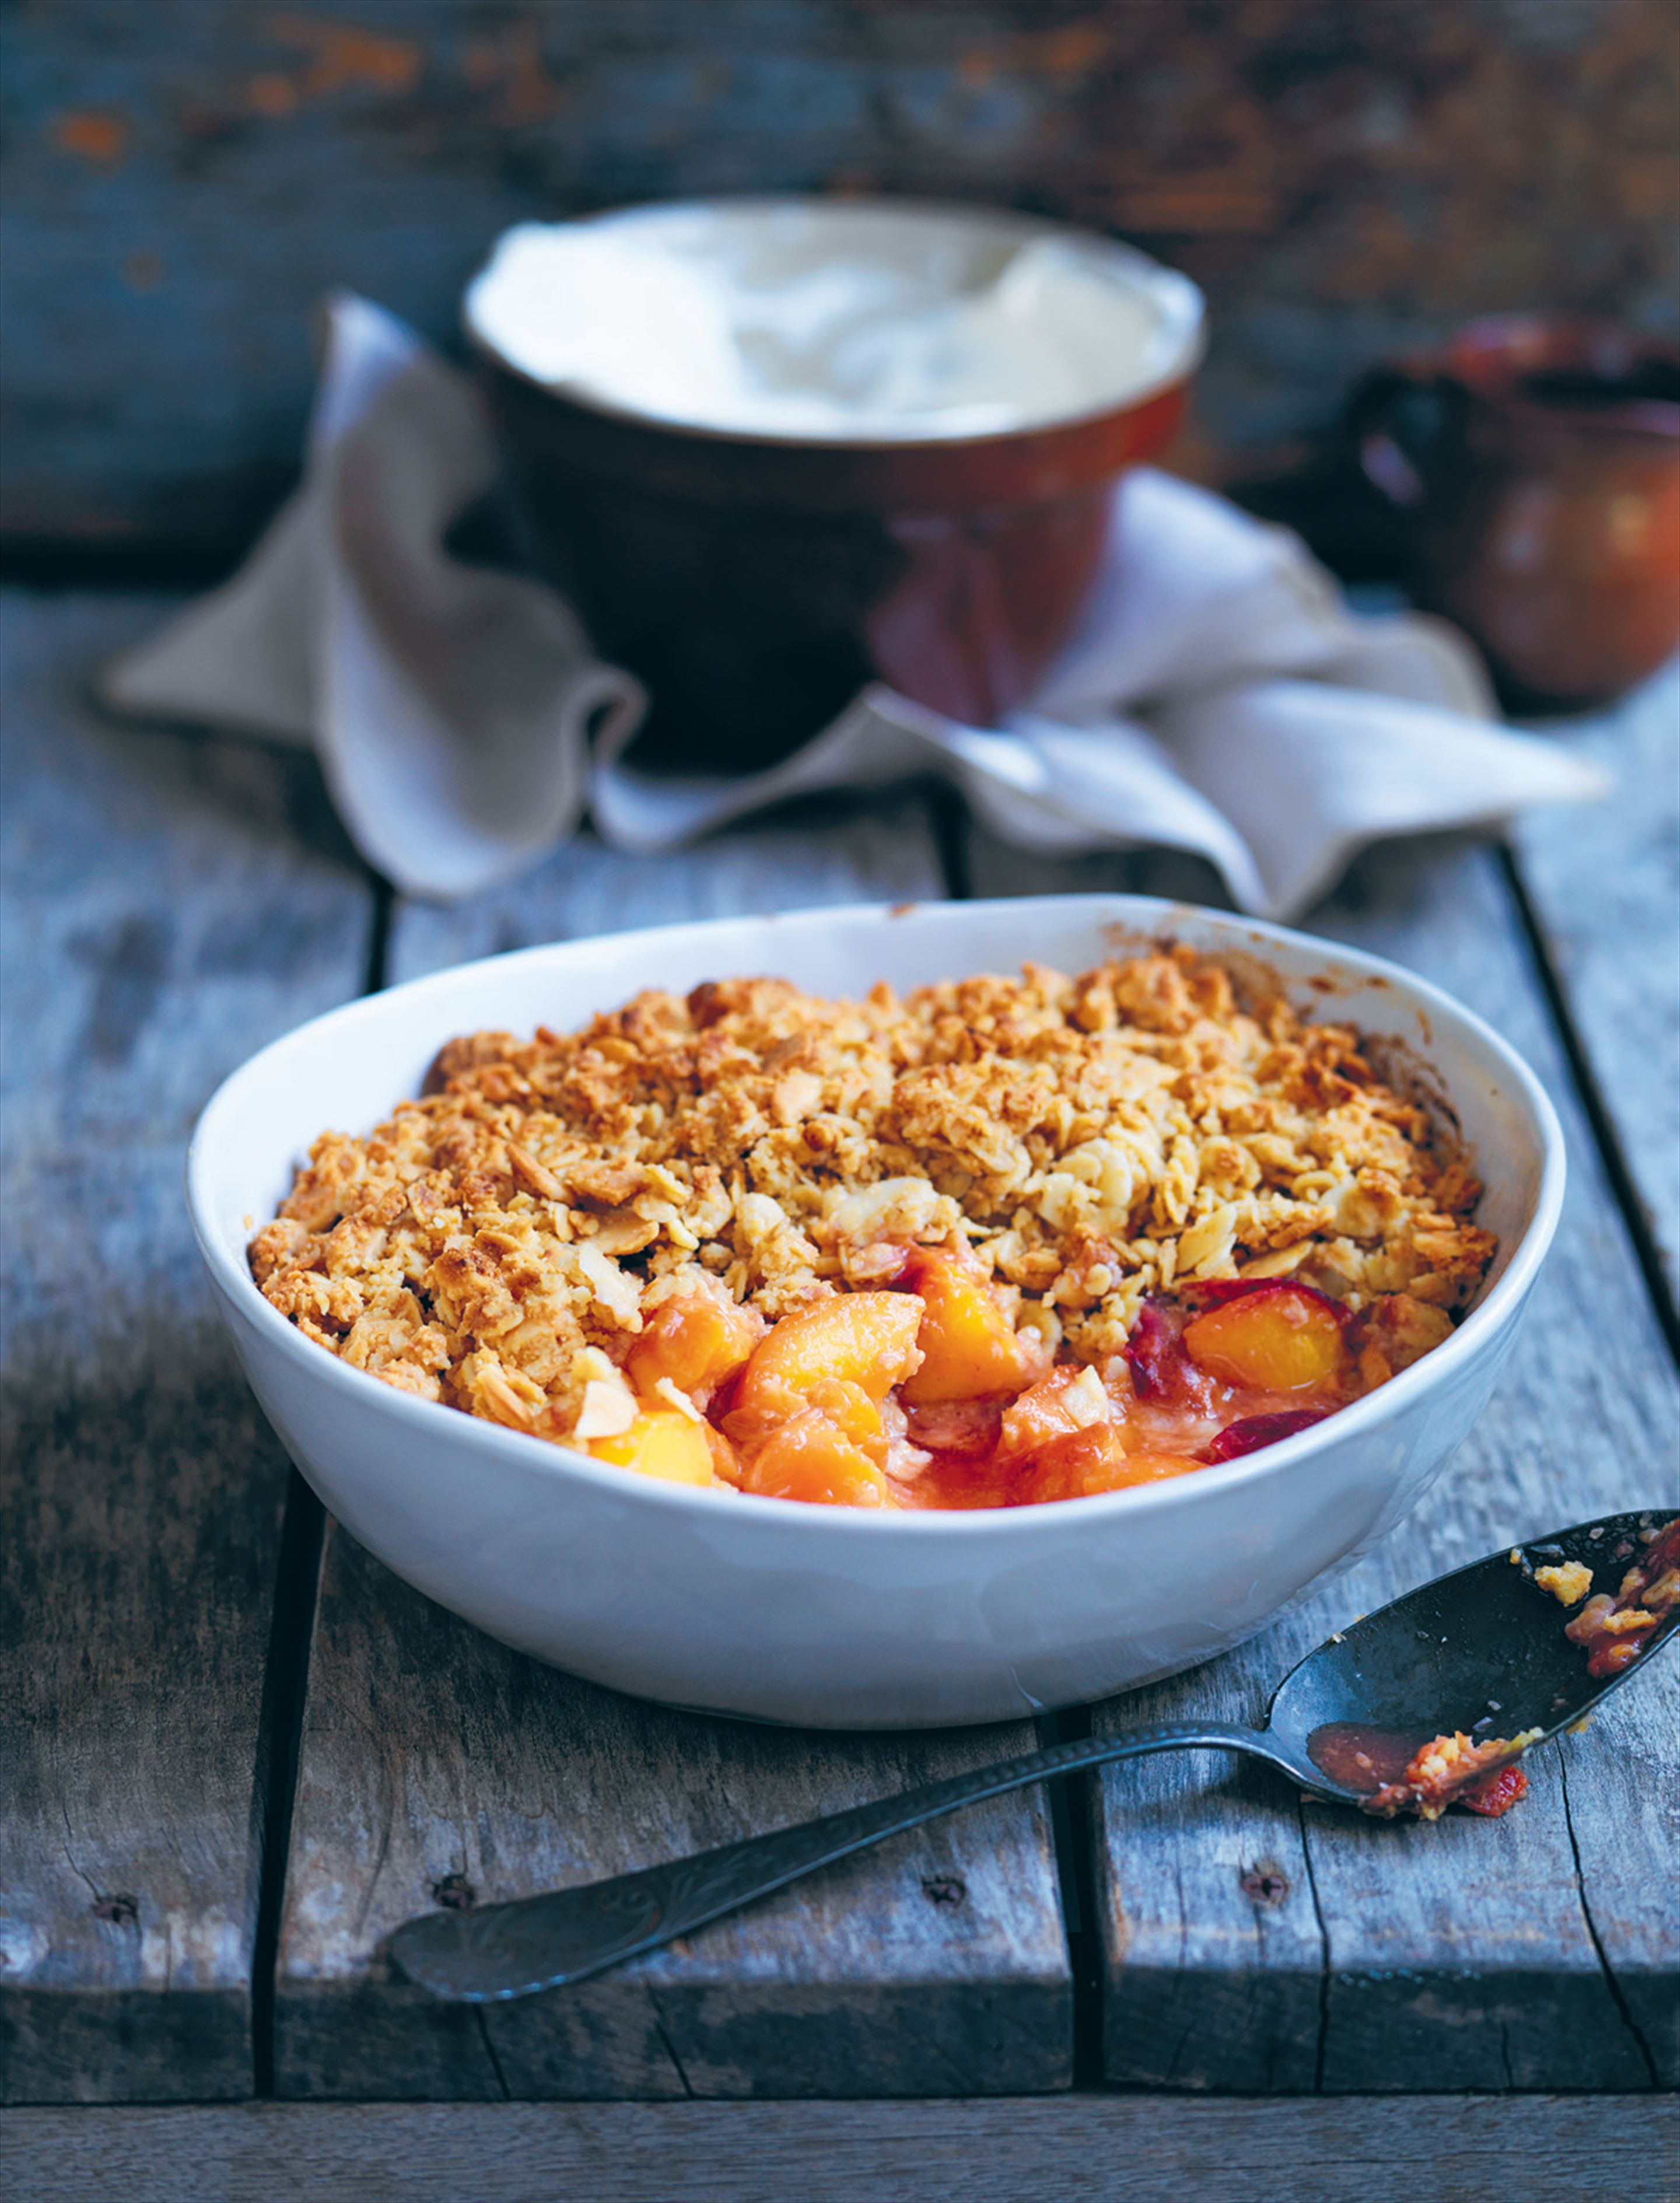 Peach almond crumble